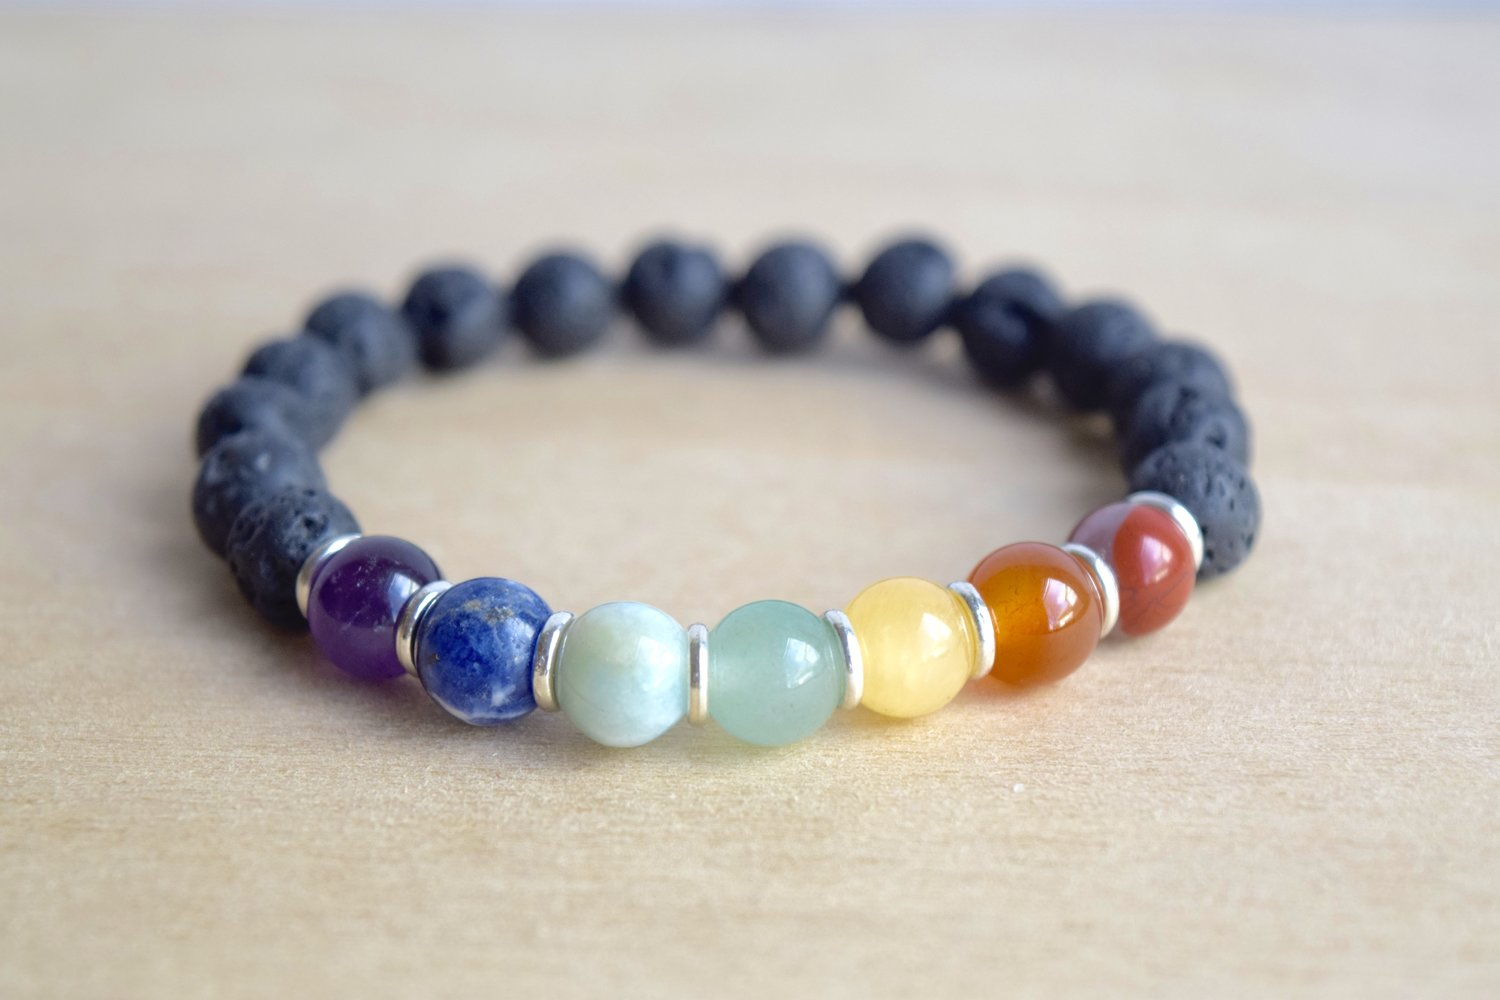 beads natural points bracelet energy wood chakra healing robles inspired with nature fullsizeoutput jewelry all